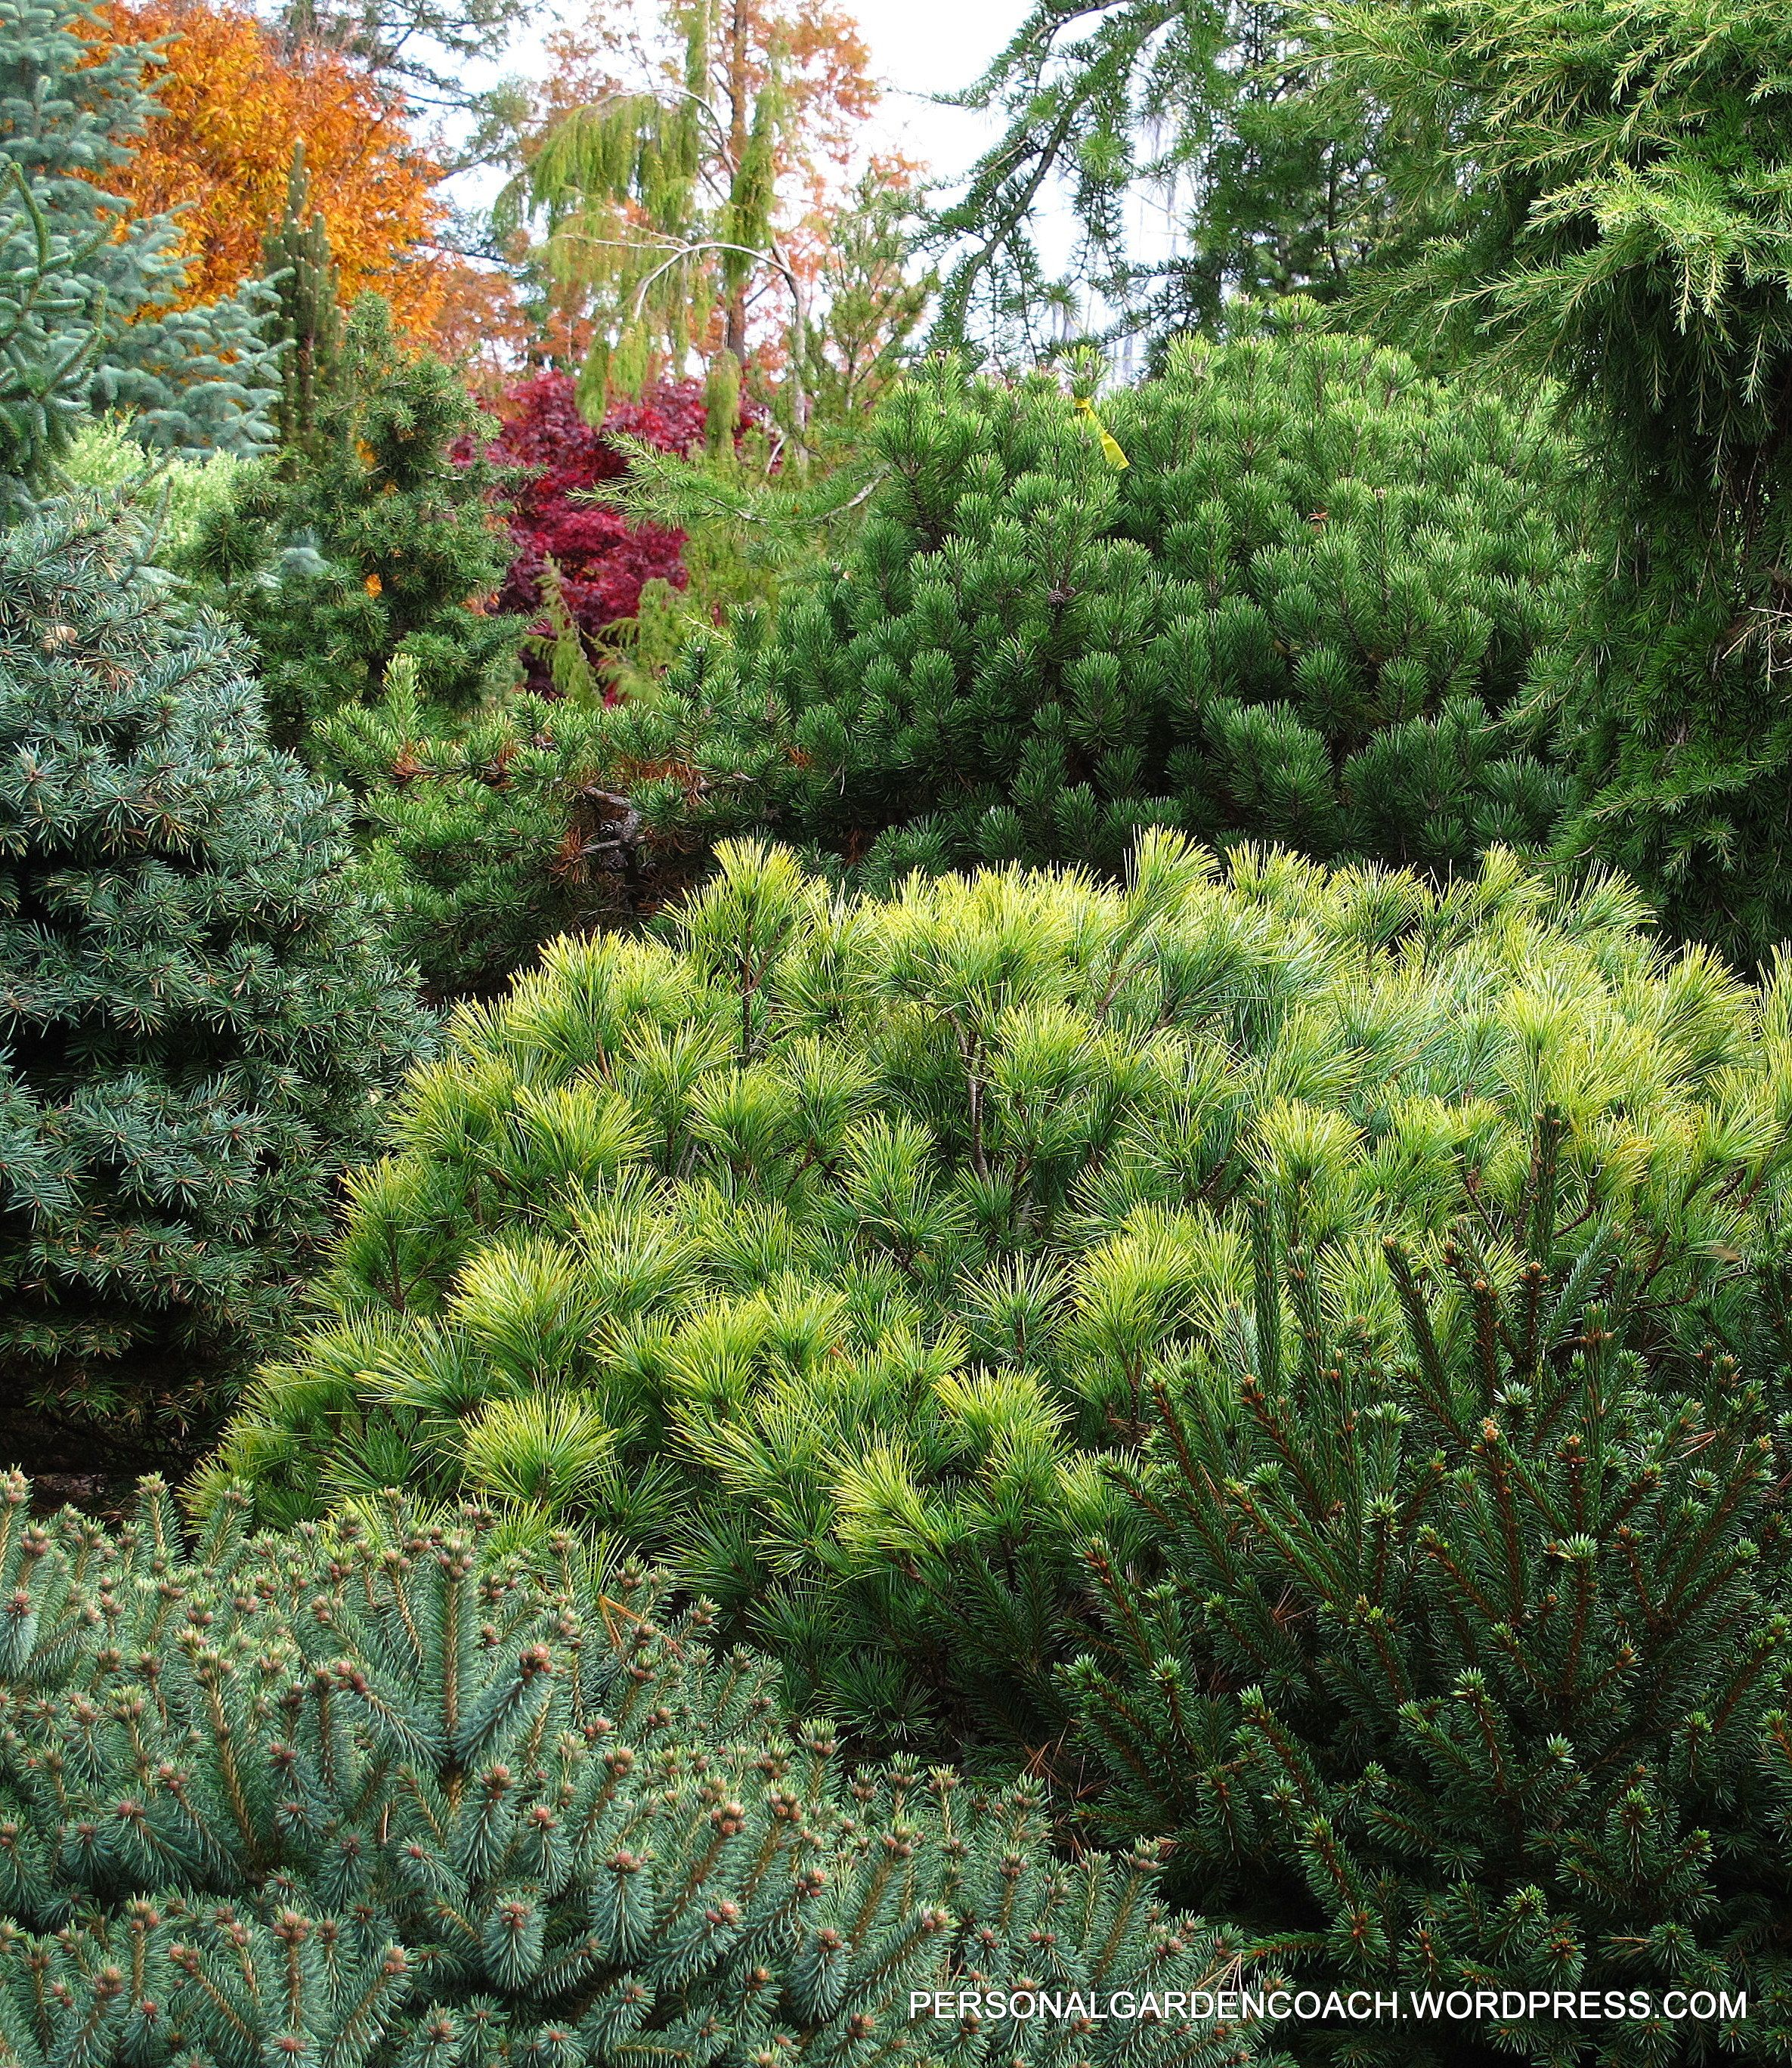 Layers Of Decadent Conifer Texture Carry The Eye All The